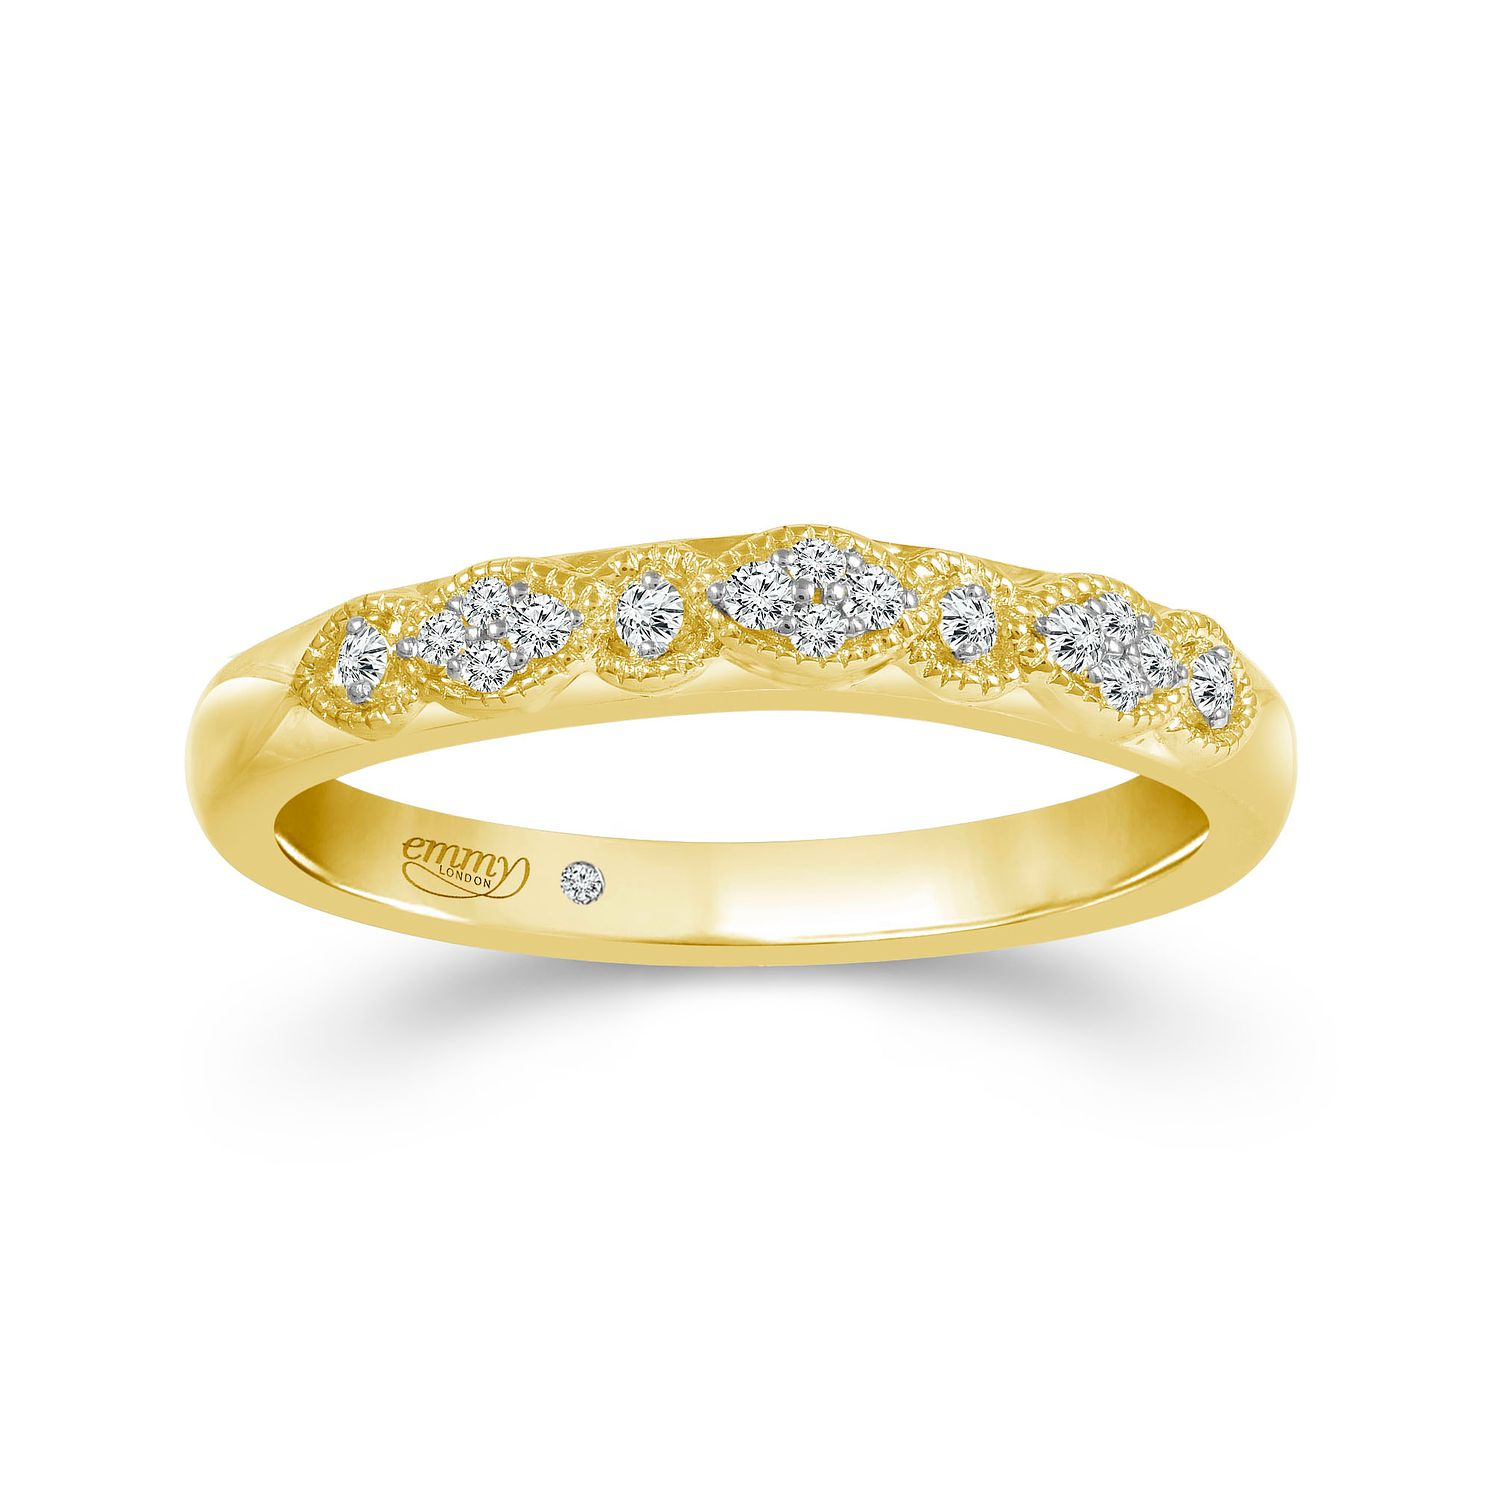 Emmy London 18ct Yellow Gold Diamond Eternity Ring - Product number 6099416